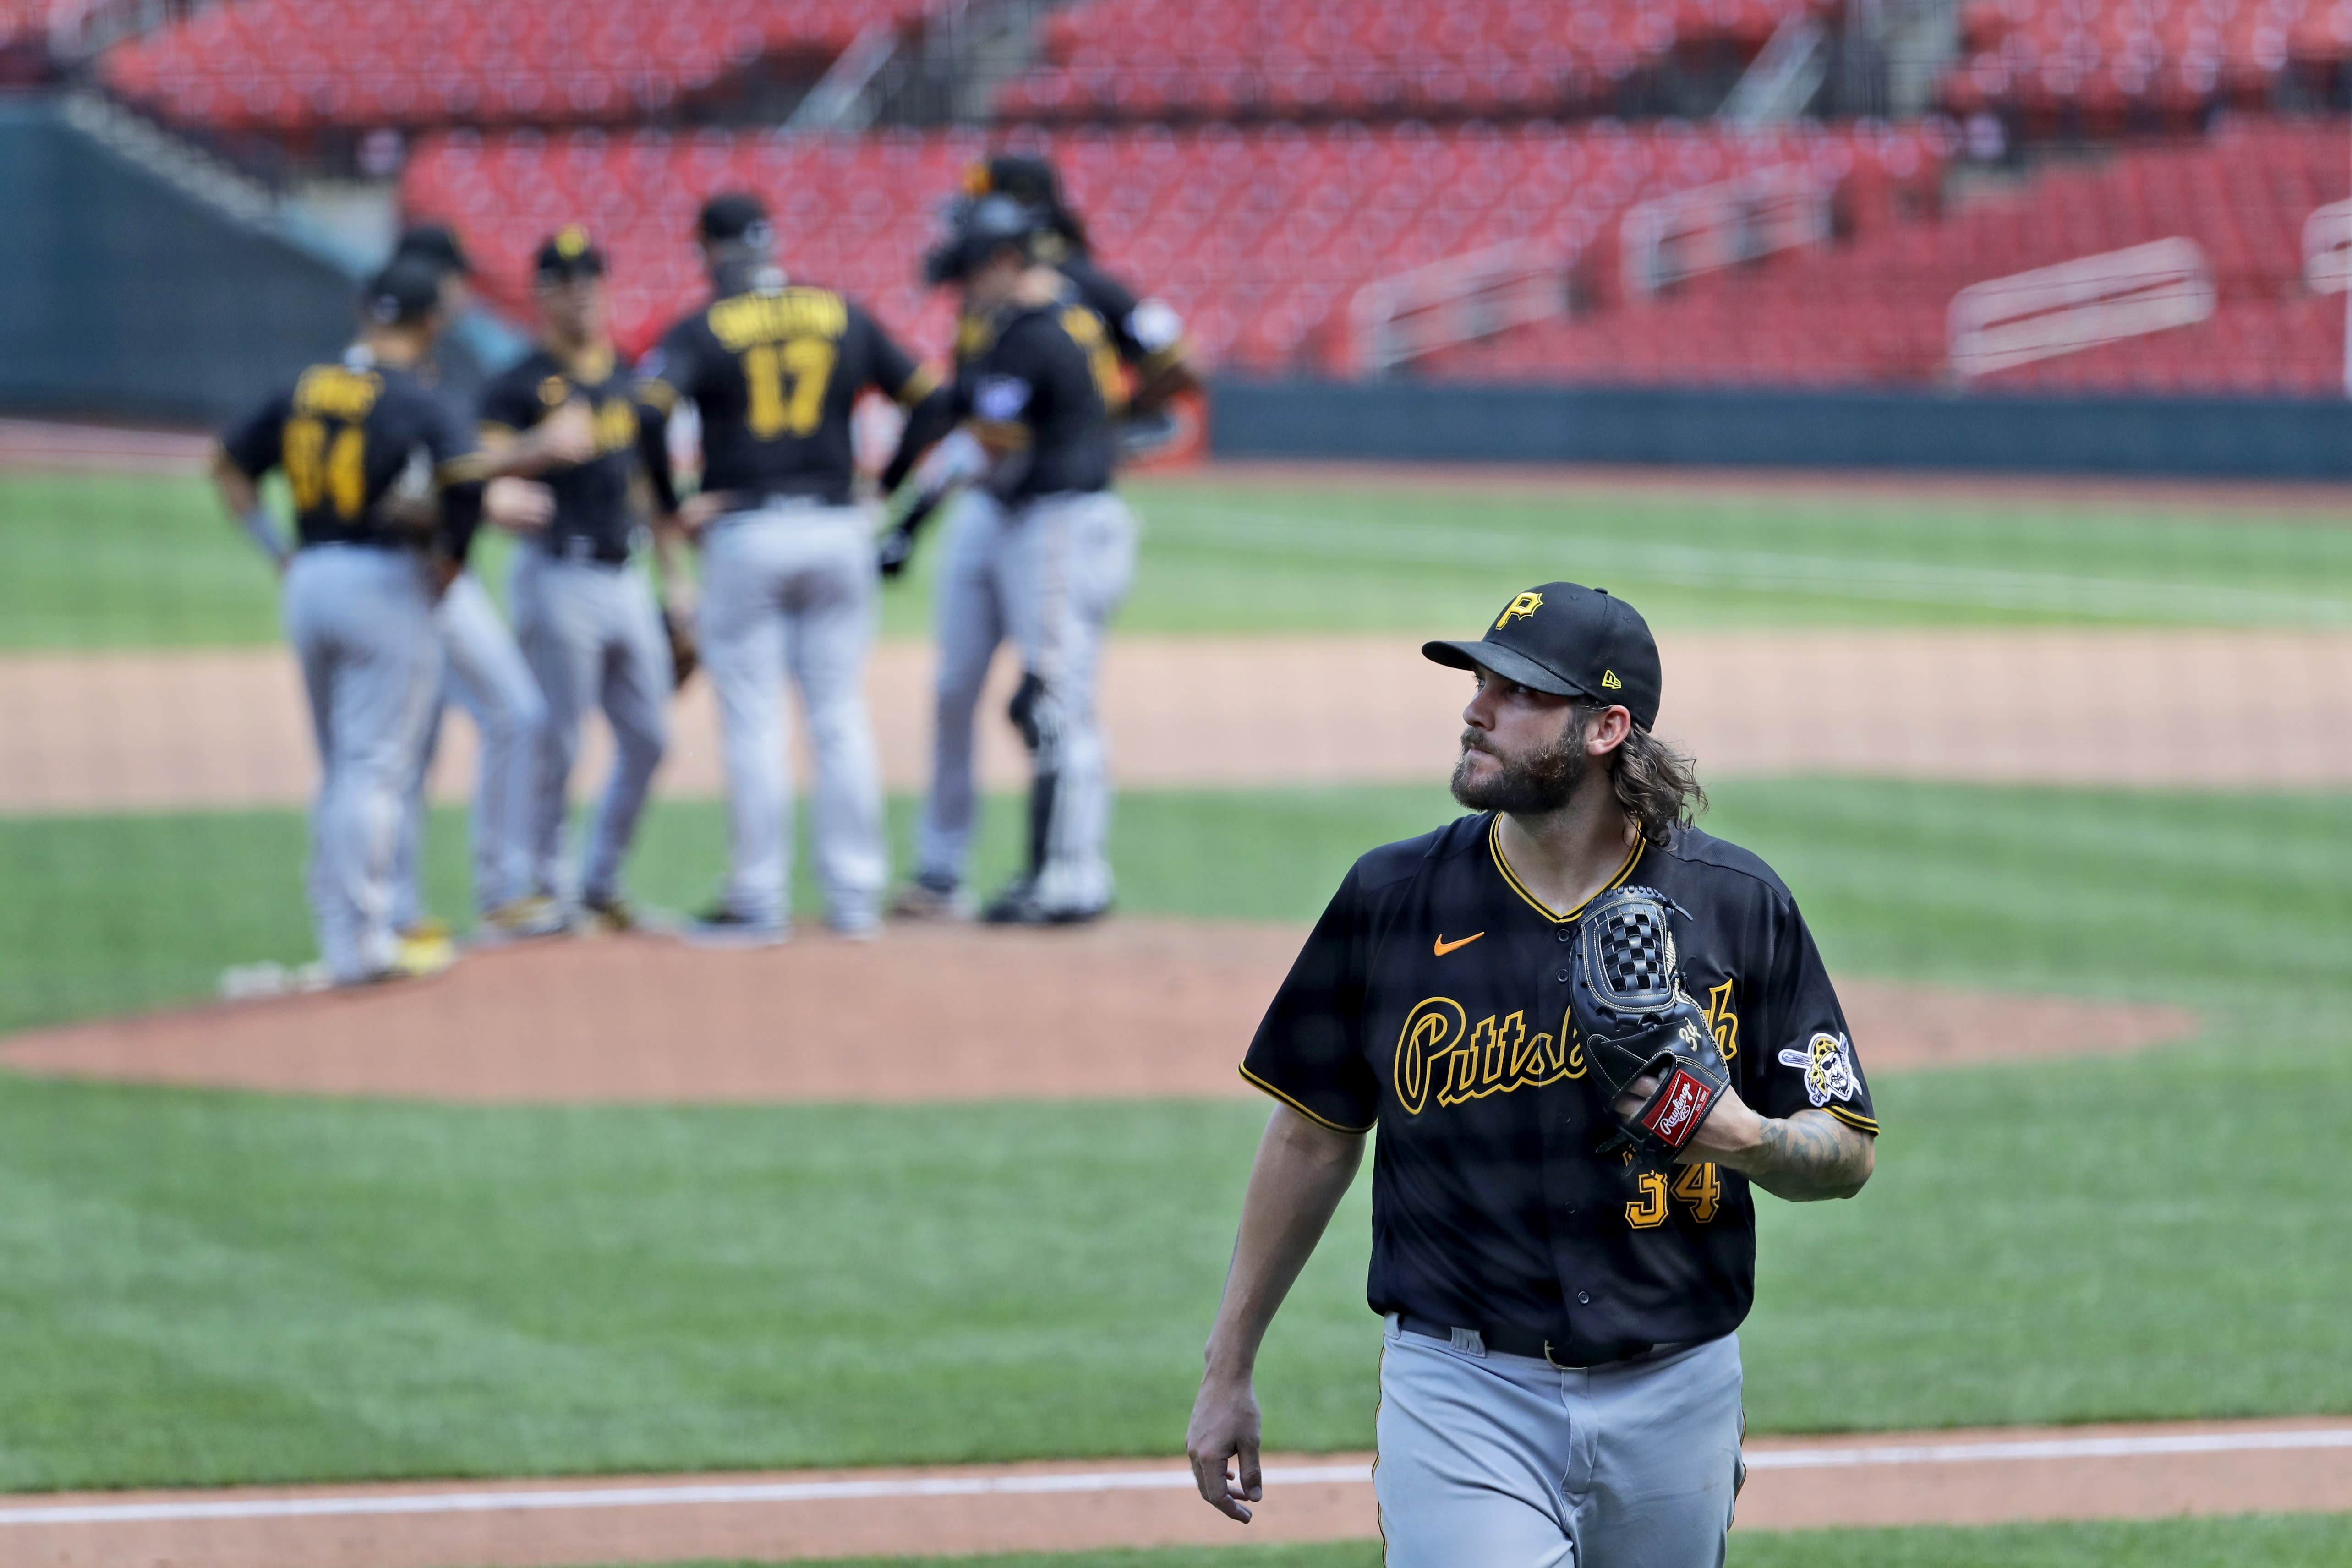 Pittsburgh Pirates starting pitcher Trevor Williams walks off the field after being removed during the fourth inning of a baseball game against the St. Louis Cardinals Saturday, July 25, 2020, in St. Louis. (AP Photo/Jeff Roberson)